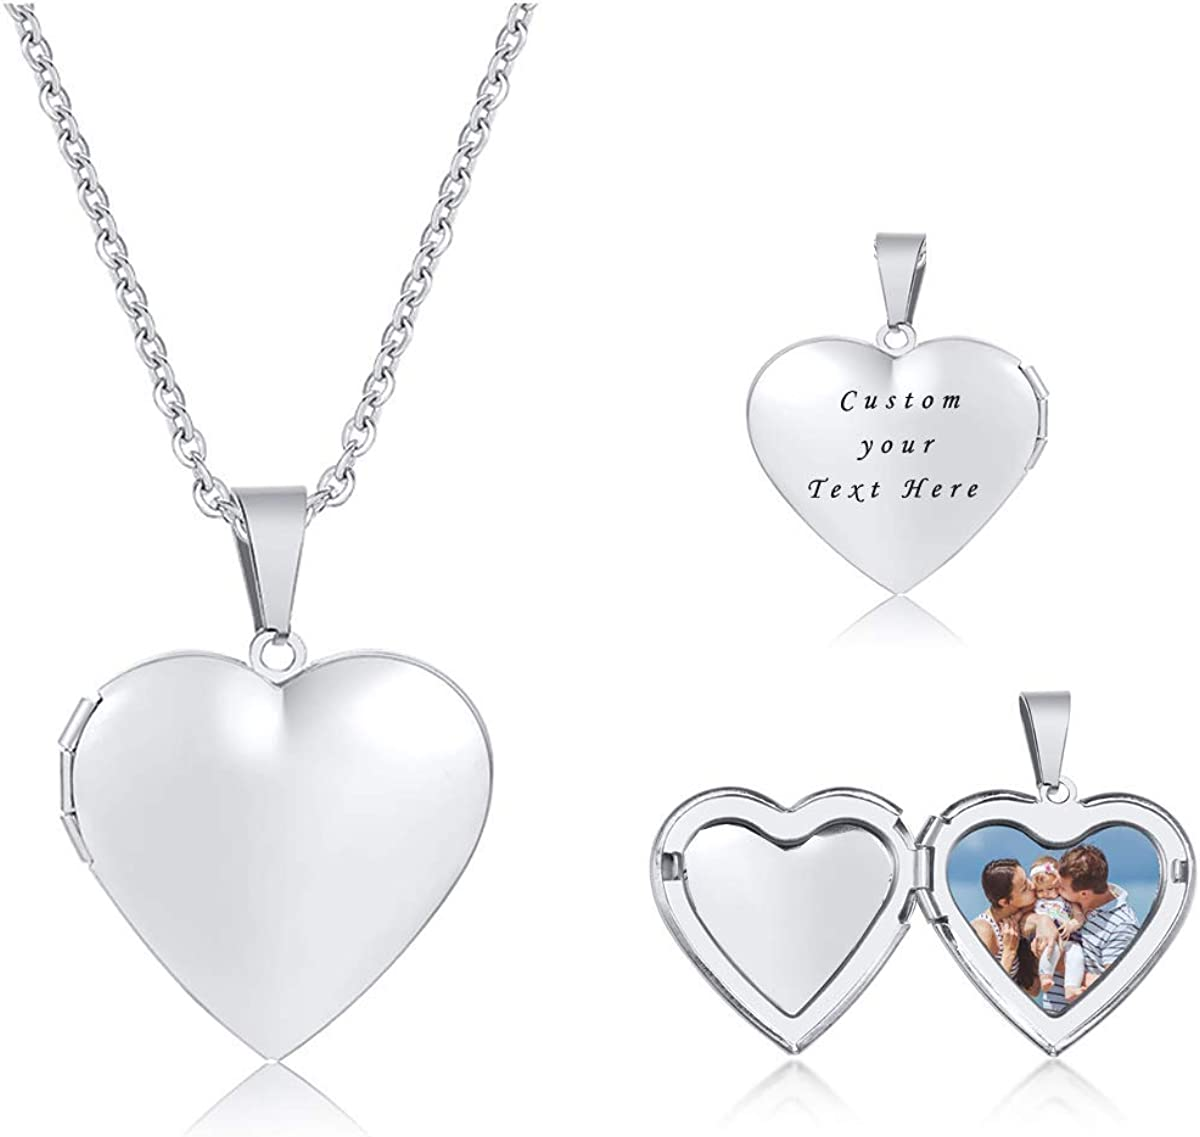 VNOX Love Heart Locket Necklace That Holds Pictures Custom Name Quote Personalized Lockets Necklaces Birthday Gifts for Women Men Girls Boys